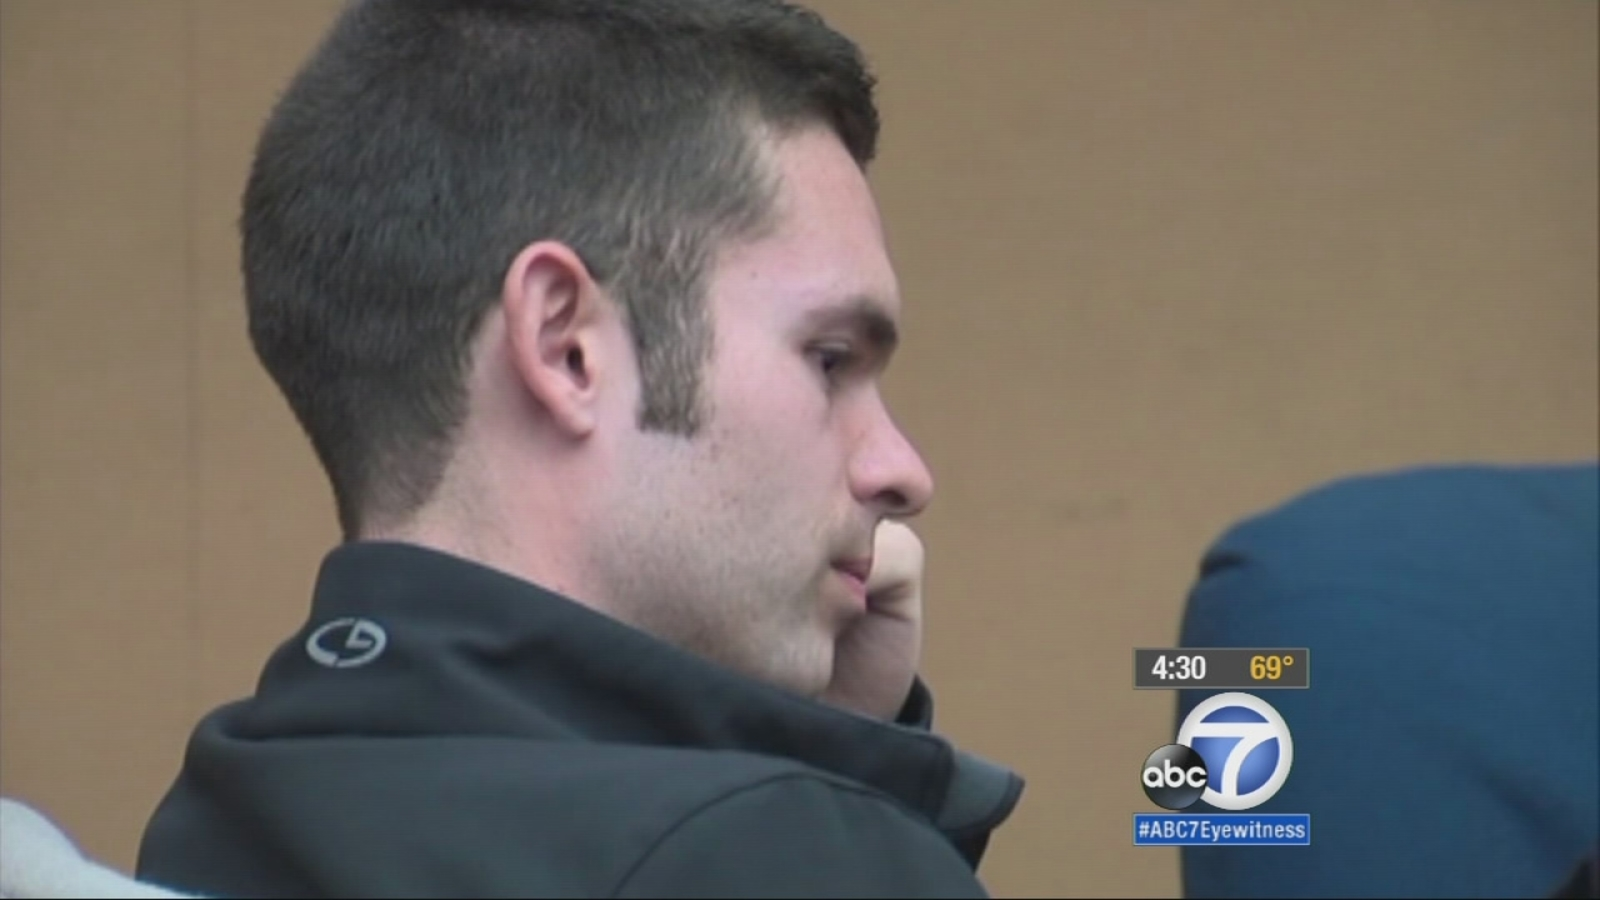 30 Years Old And 20 Years Old Porn san diego man convicted in nude photo case; faces 20 years in prison